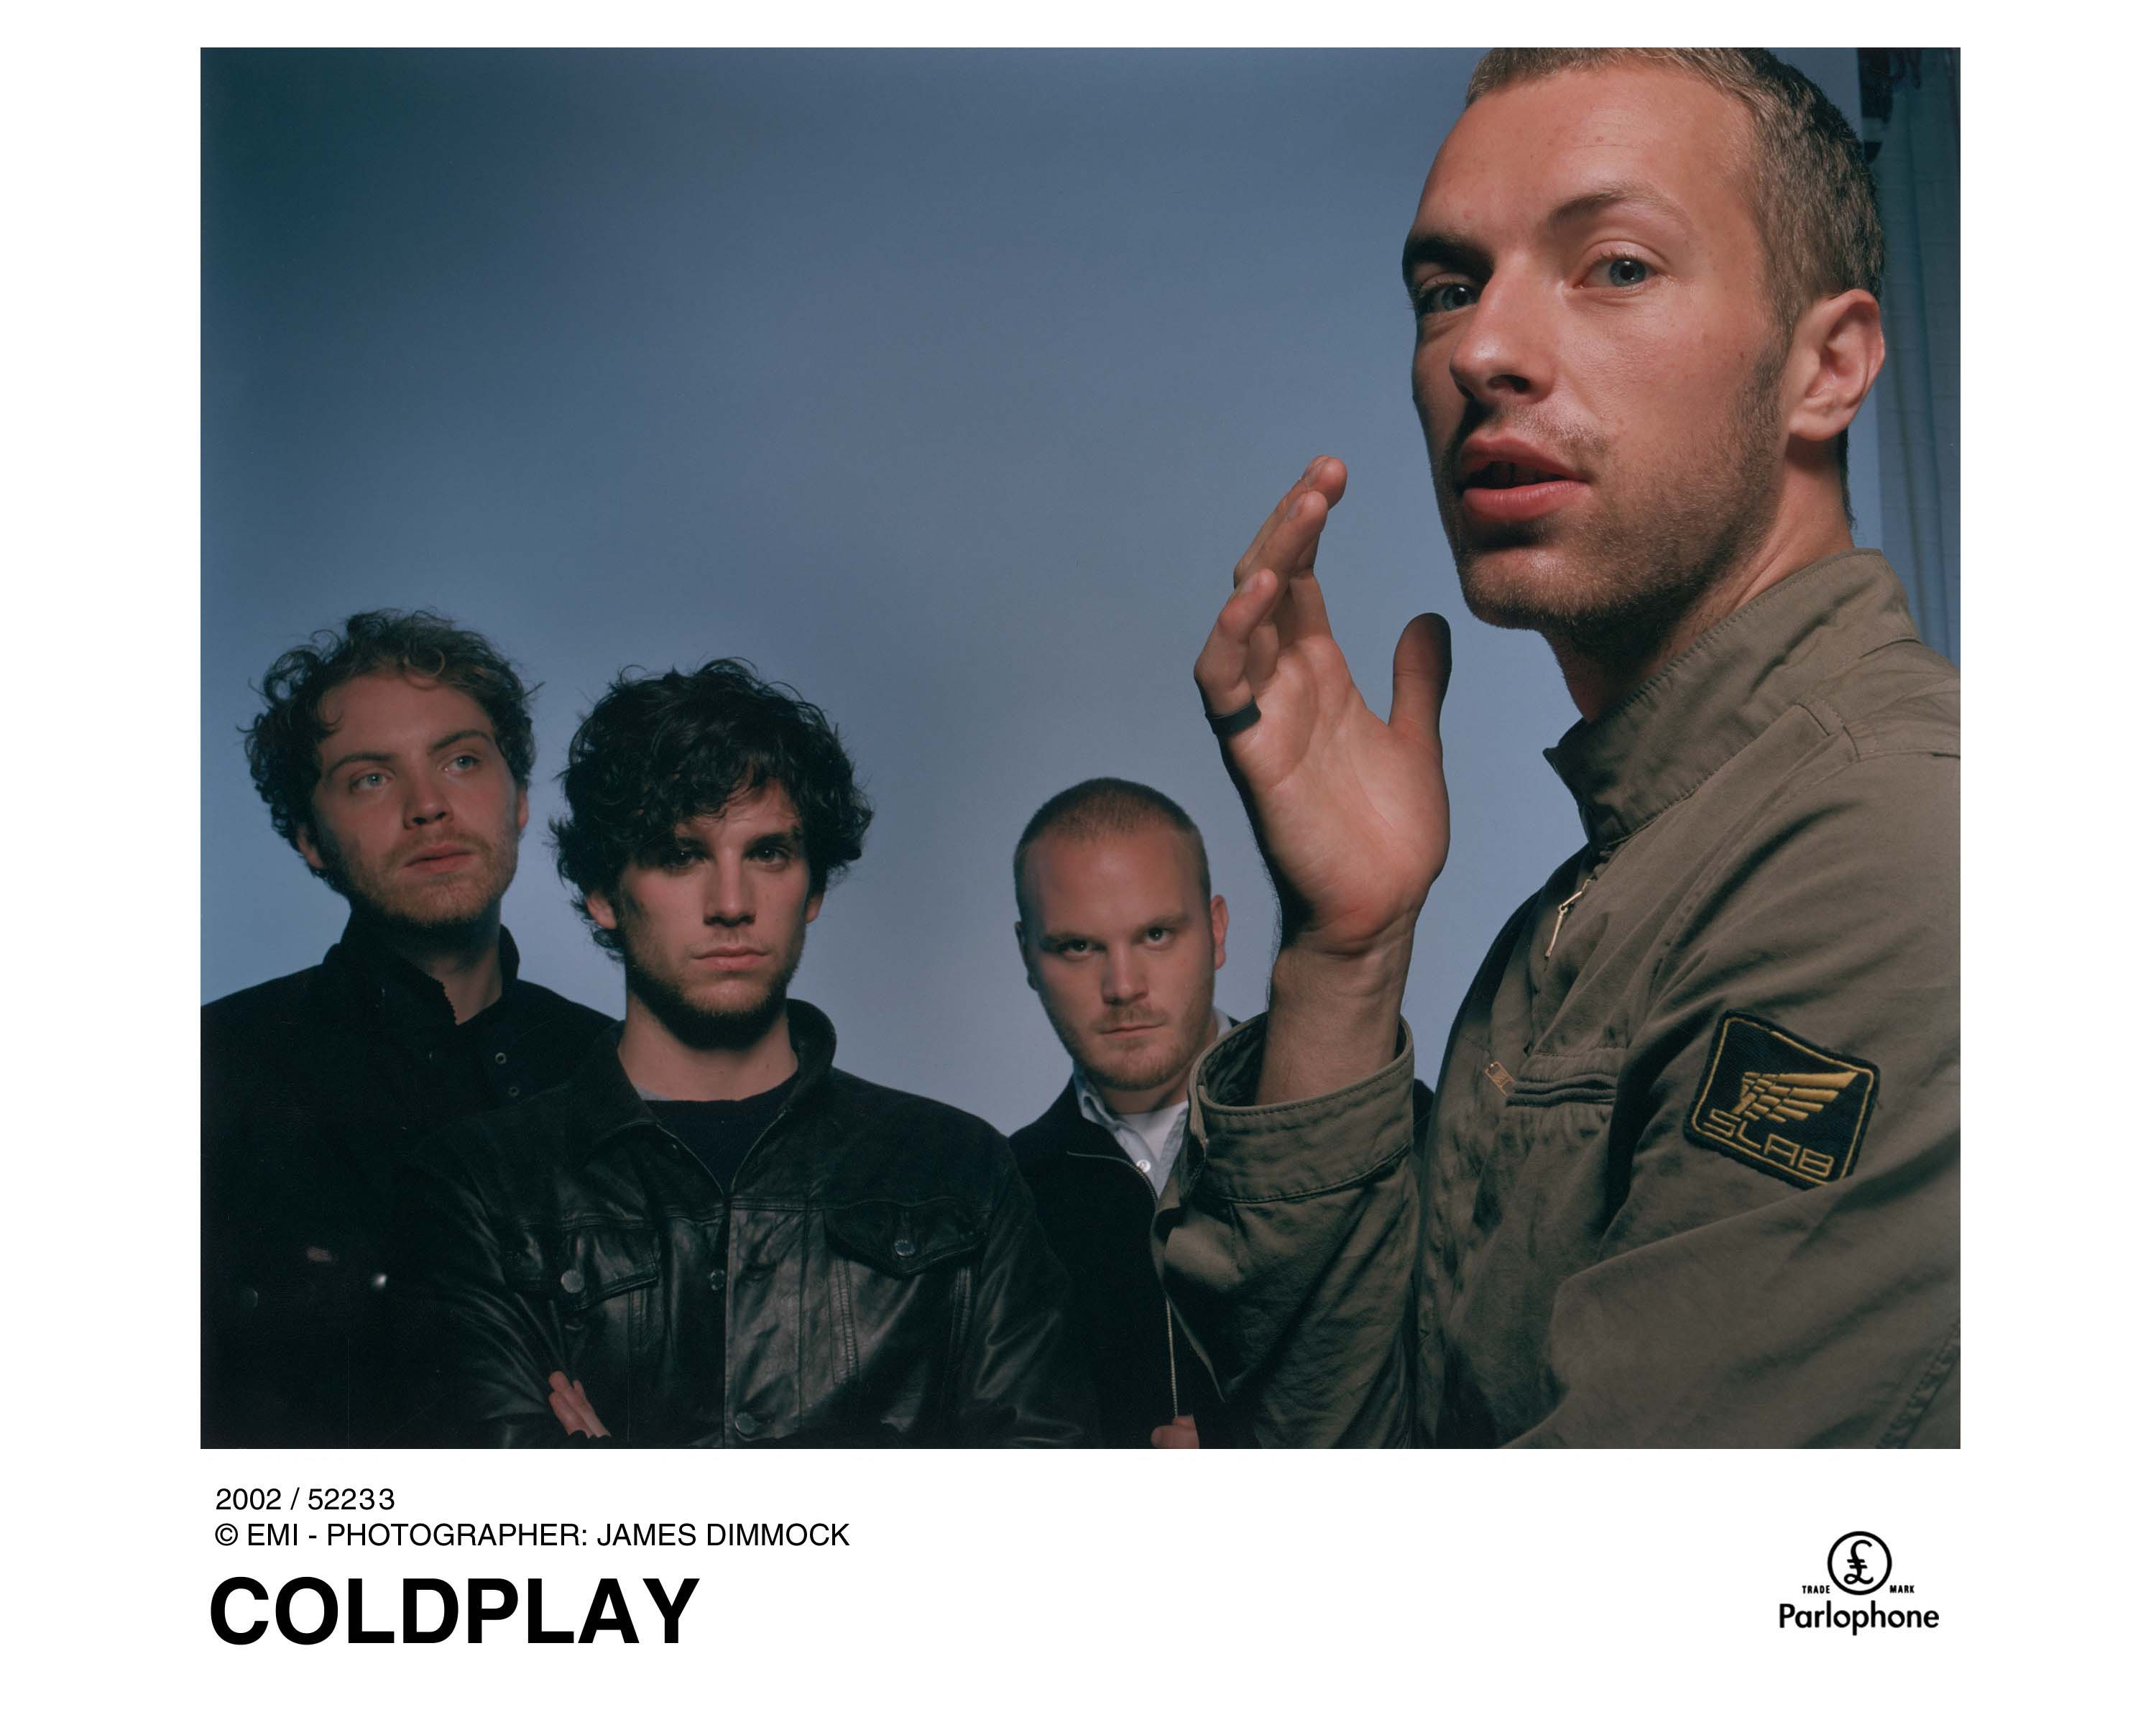 coldplay photo by permission of Capitol Records